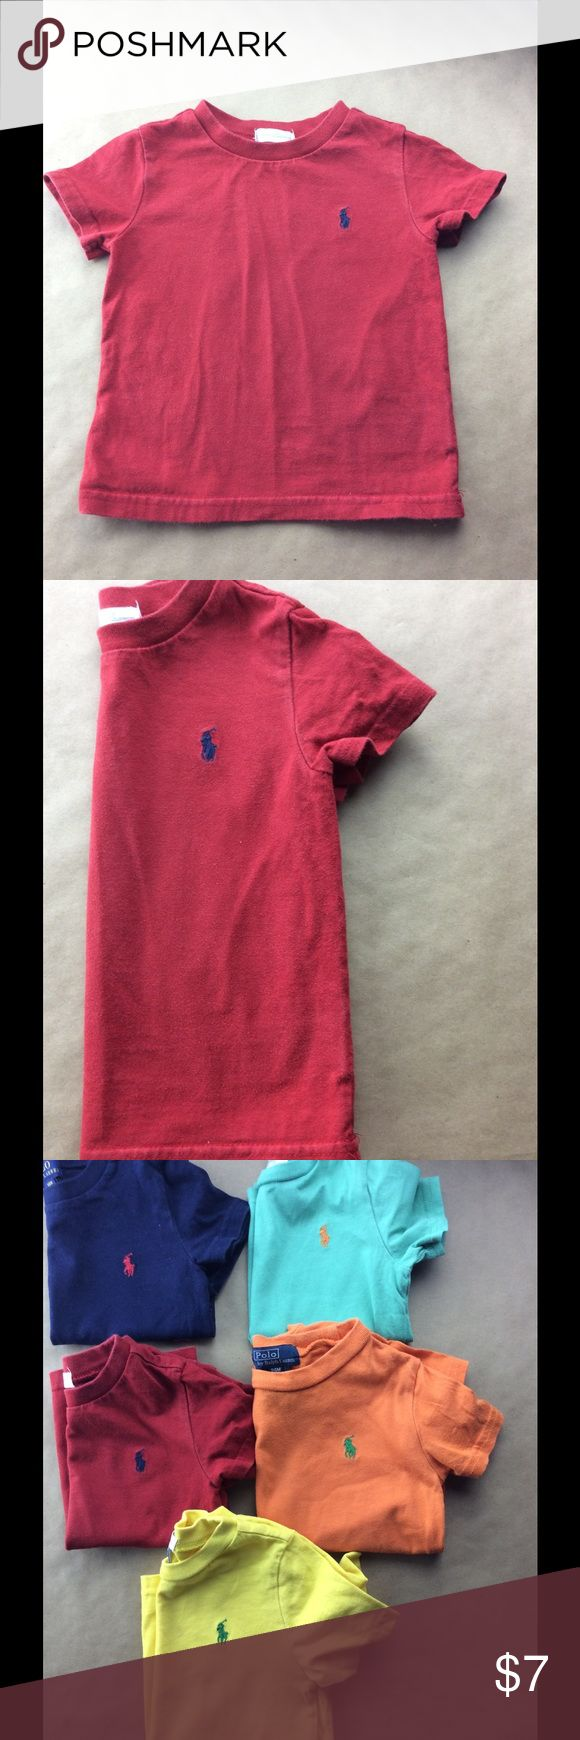 Polo Tee shirt Red classic Polo Tee Polo by Ralph Lauren Shirts & Tops Tees - Short Sleeve